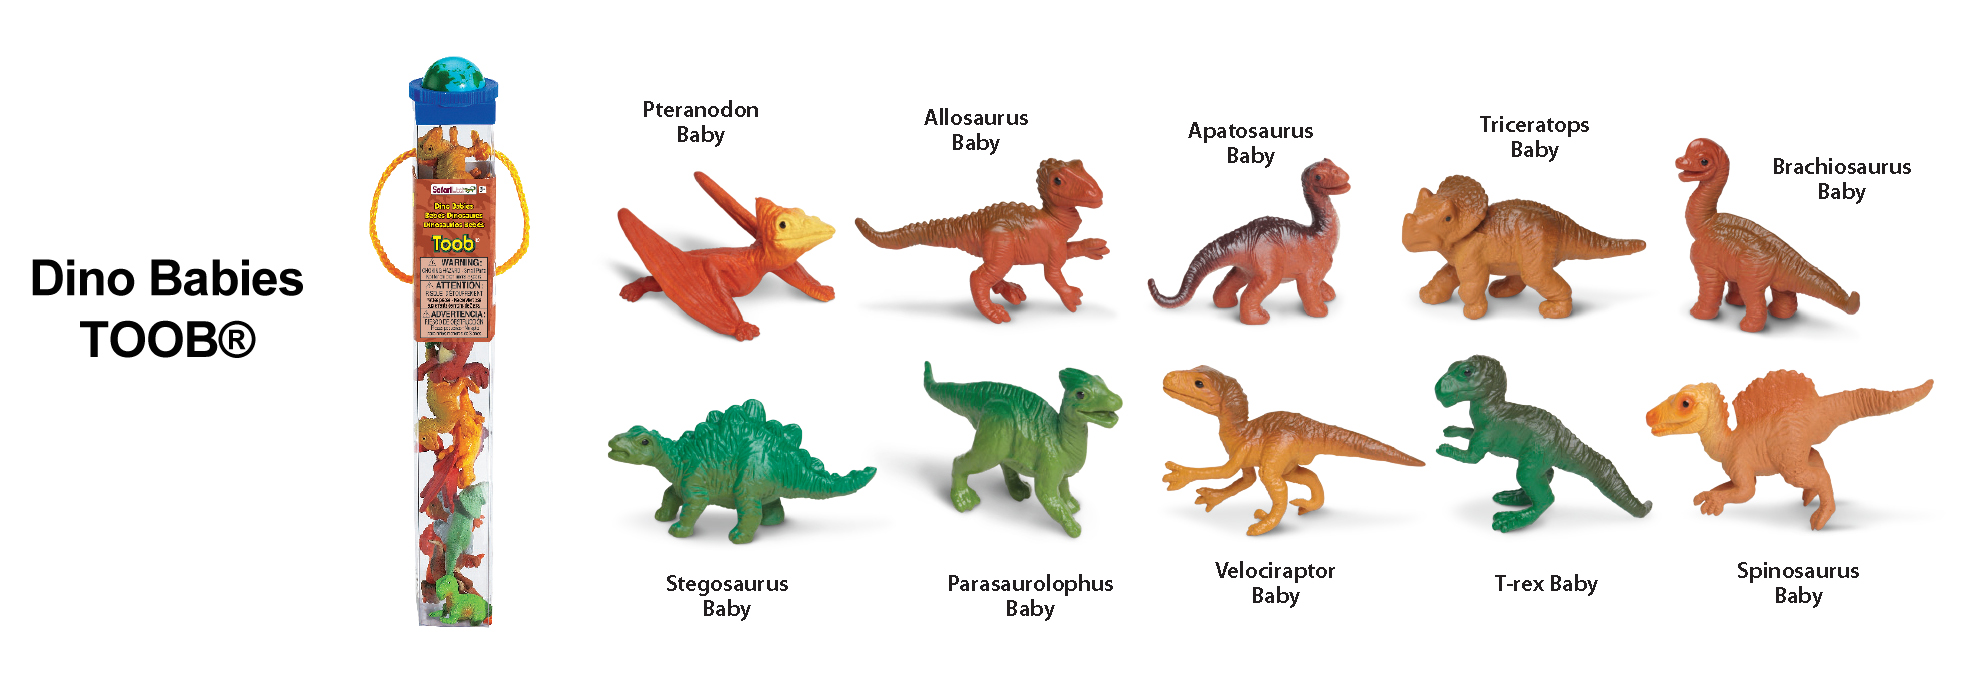 Dino Babies TOOB Key (Image from Safari Ltd.)